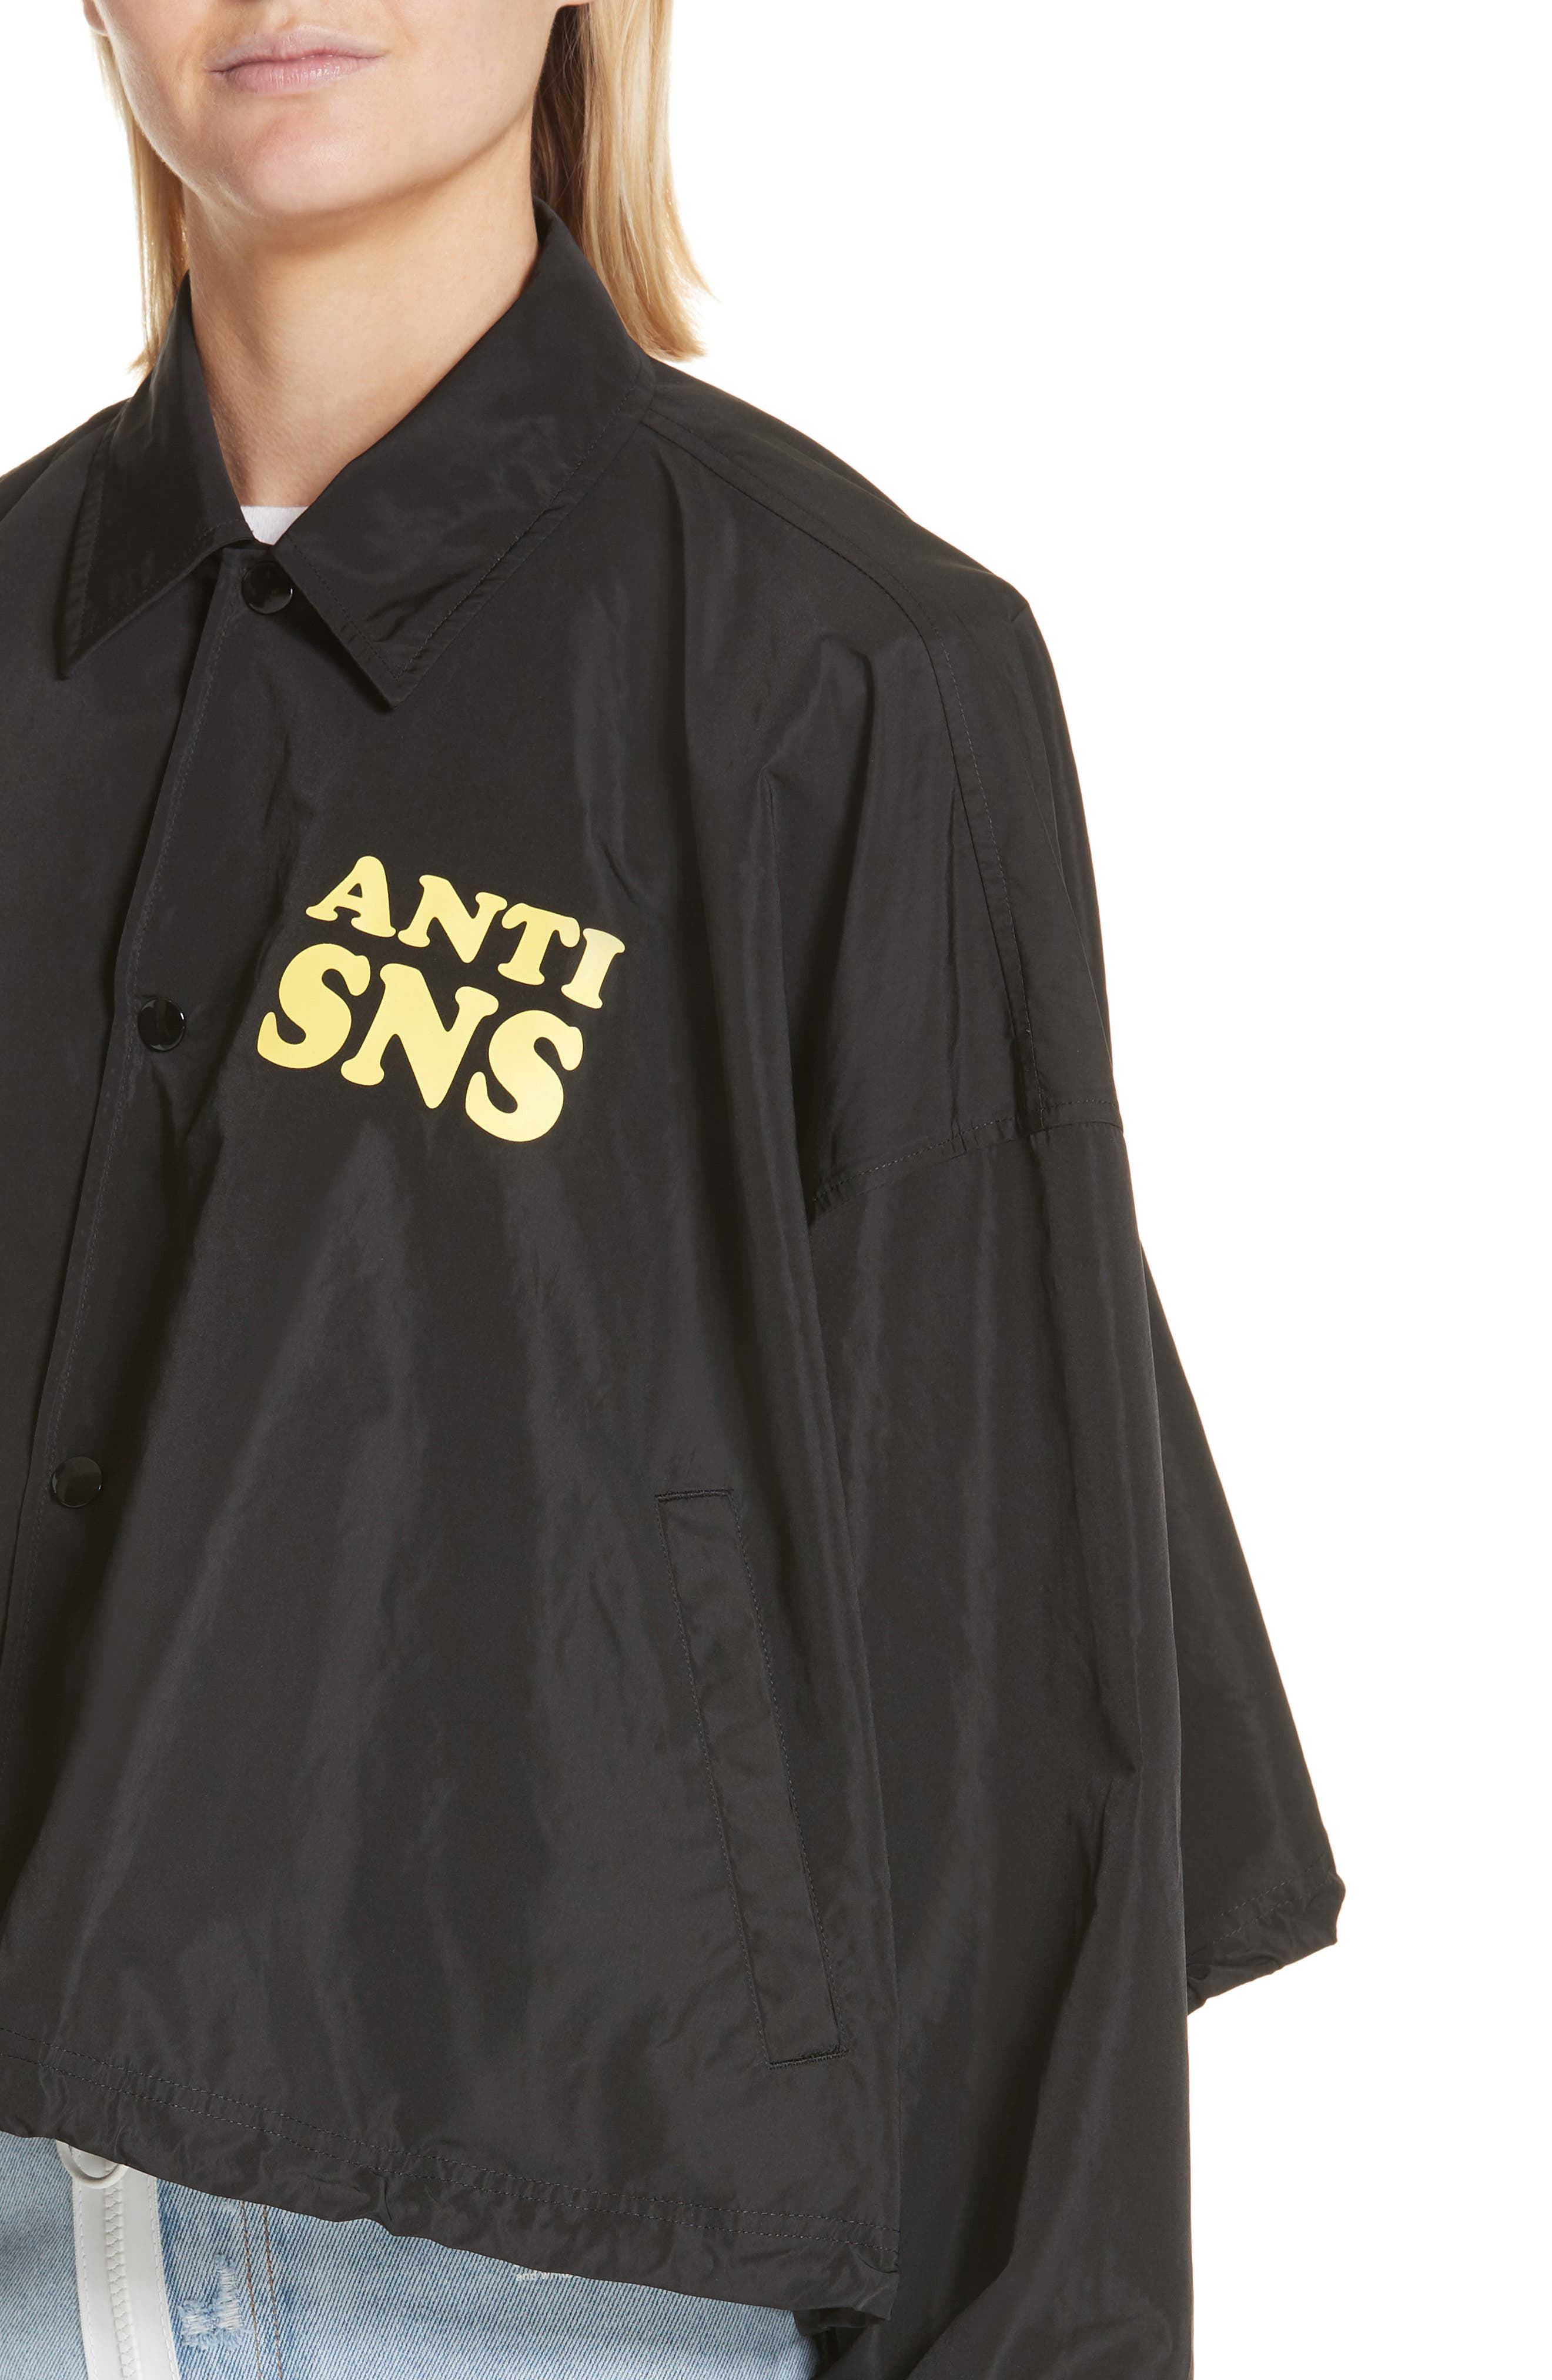 Anti SNS Jacket,                             Alternate thumbnail 4, color,                             001